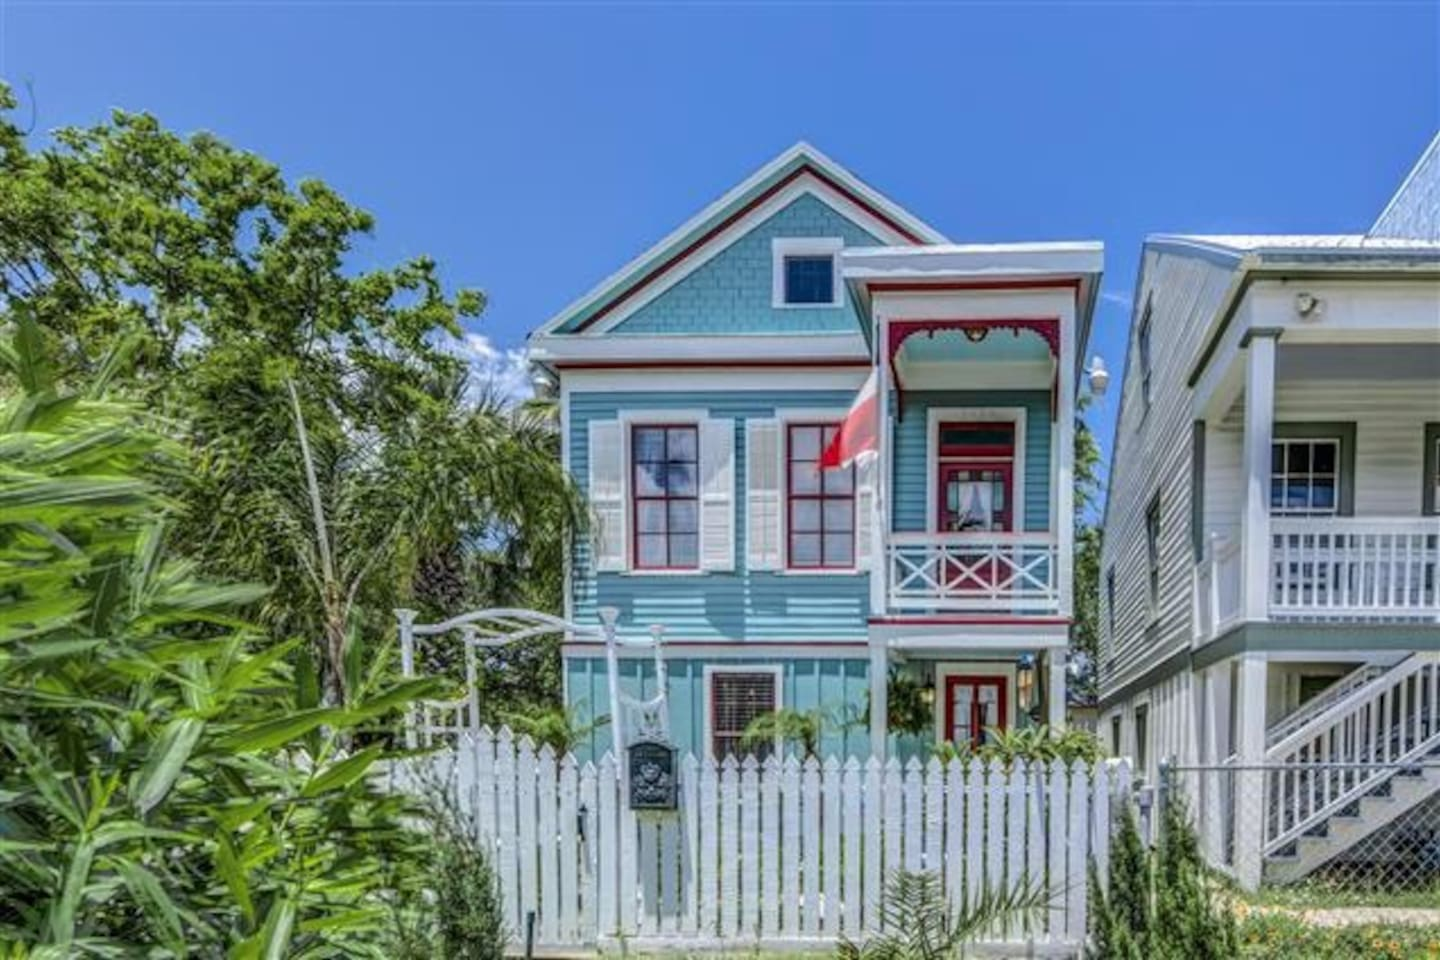 Beautifully restored 1898 Home, located in the Nationally Historic Silk Stocking District. This home is in the local history books and is a real treat for guests to stay in. Cozy and comfortable!!